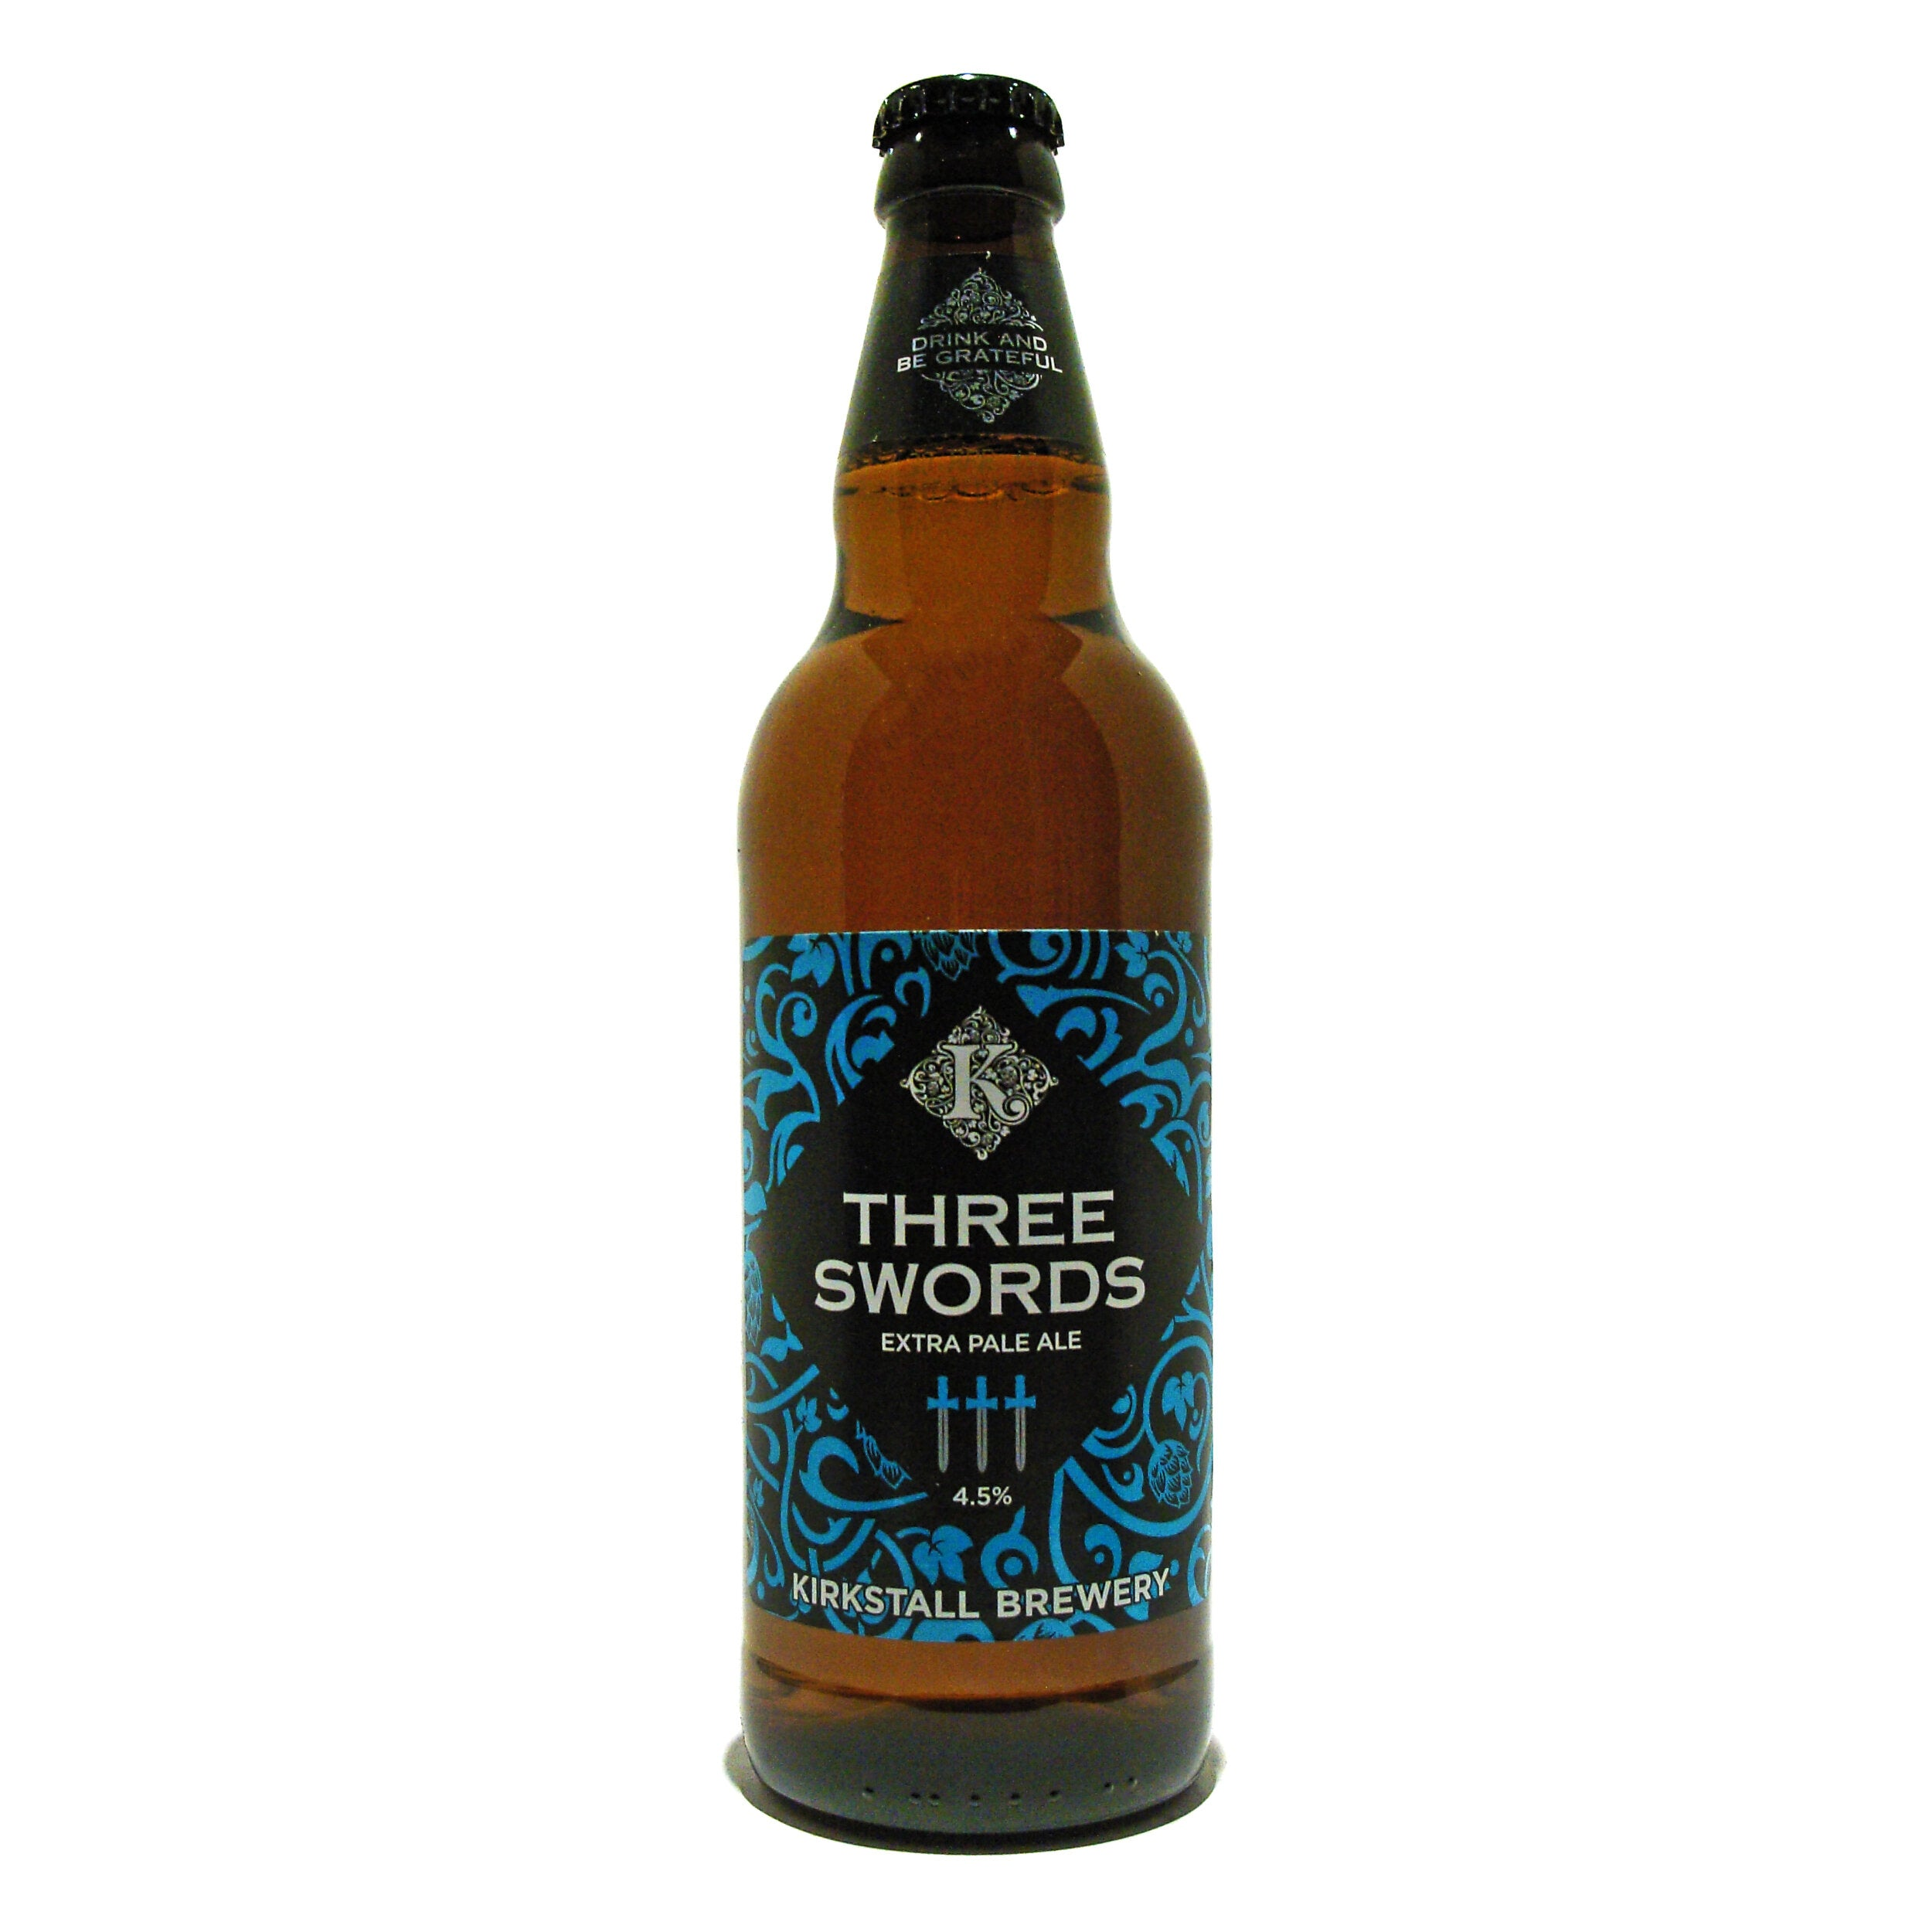 Three Swords Extra Pale Ale 4.5% ABV (8 x 500ml) - Bodega Movil